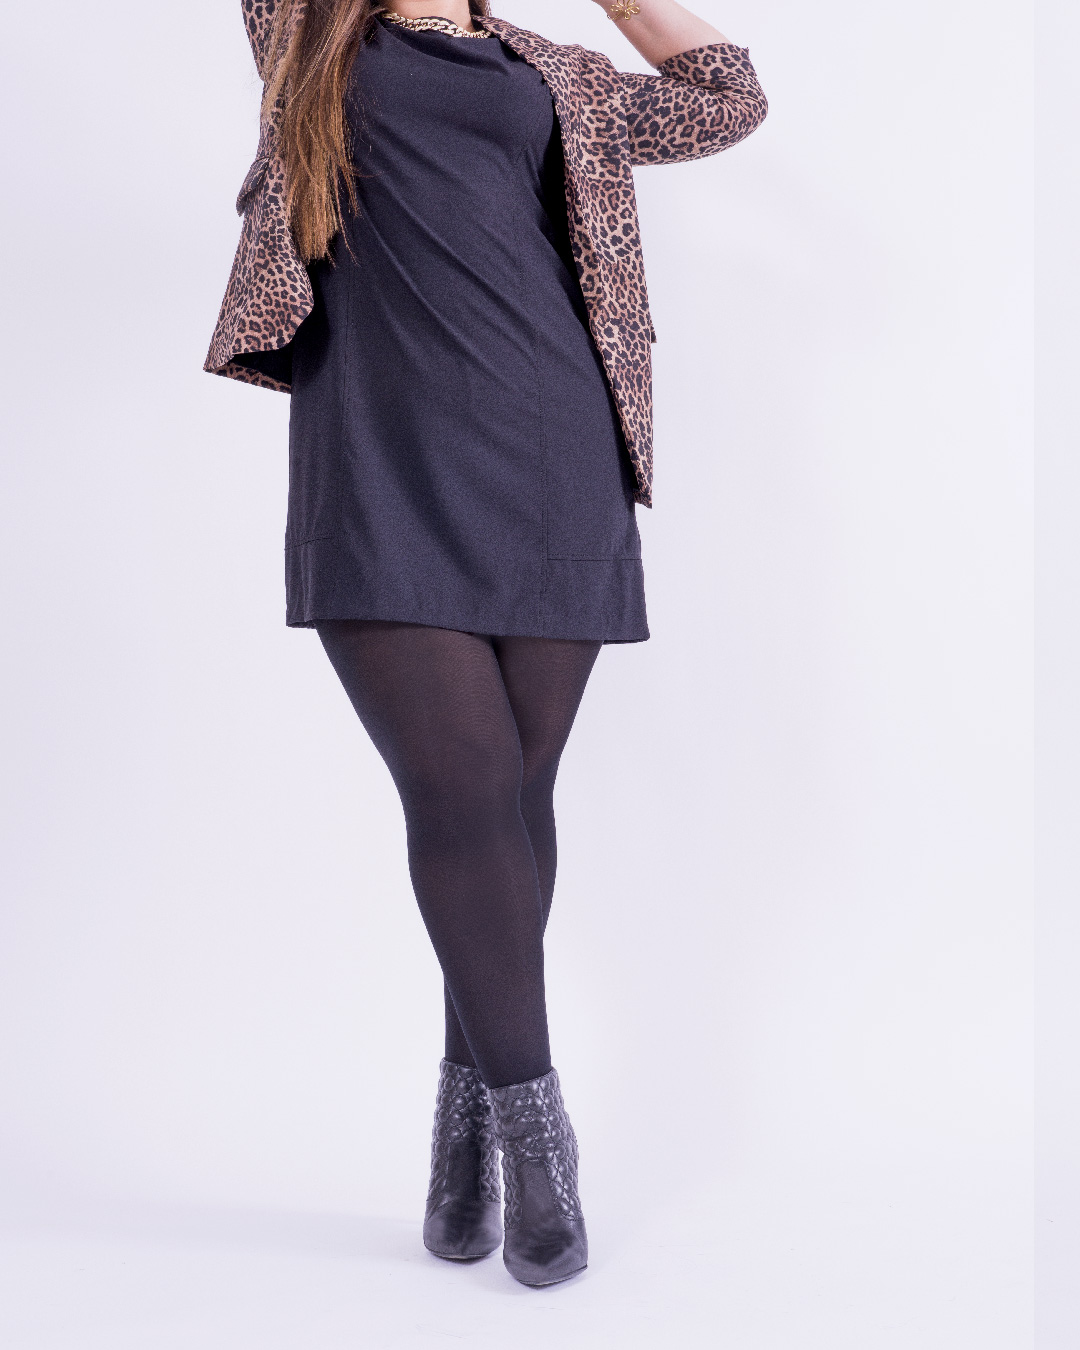 personalsize-exclusive-collant-exclusive_50-prd_001.jpg